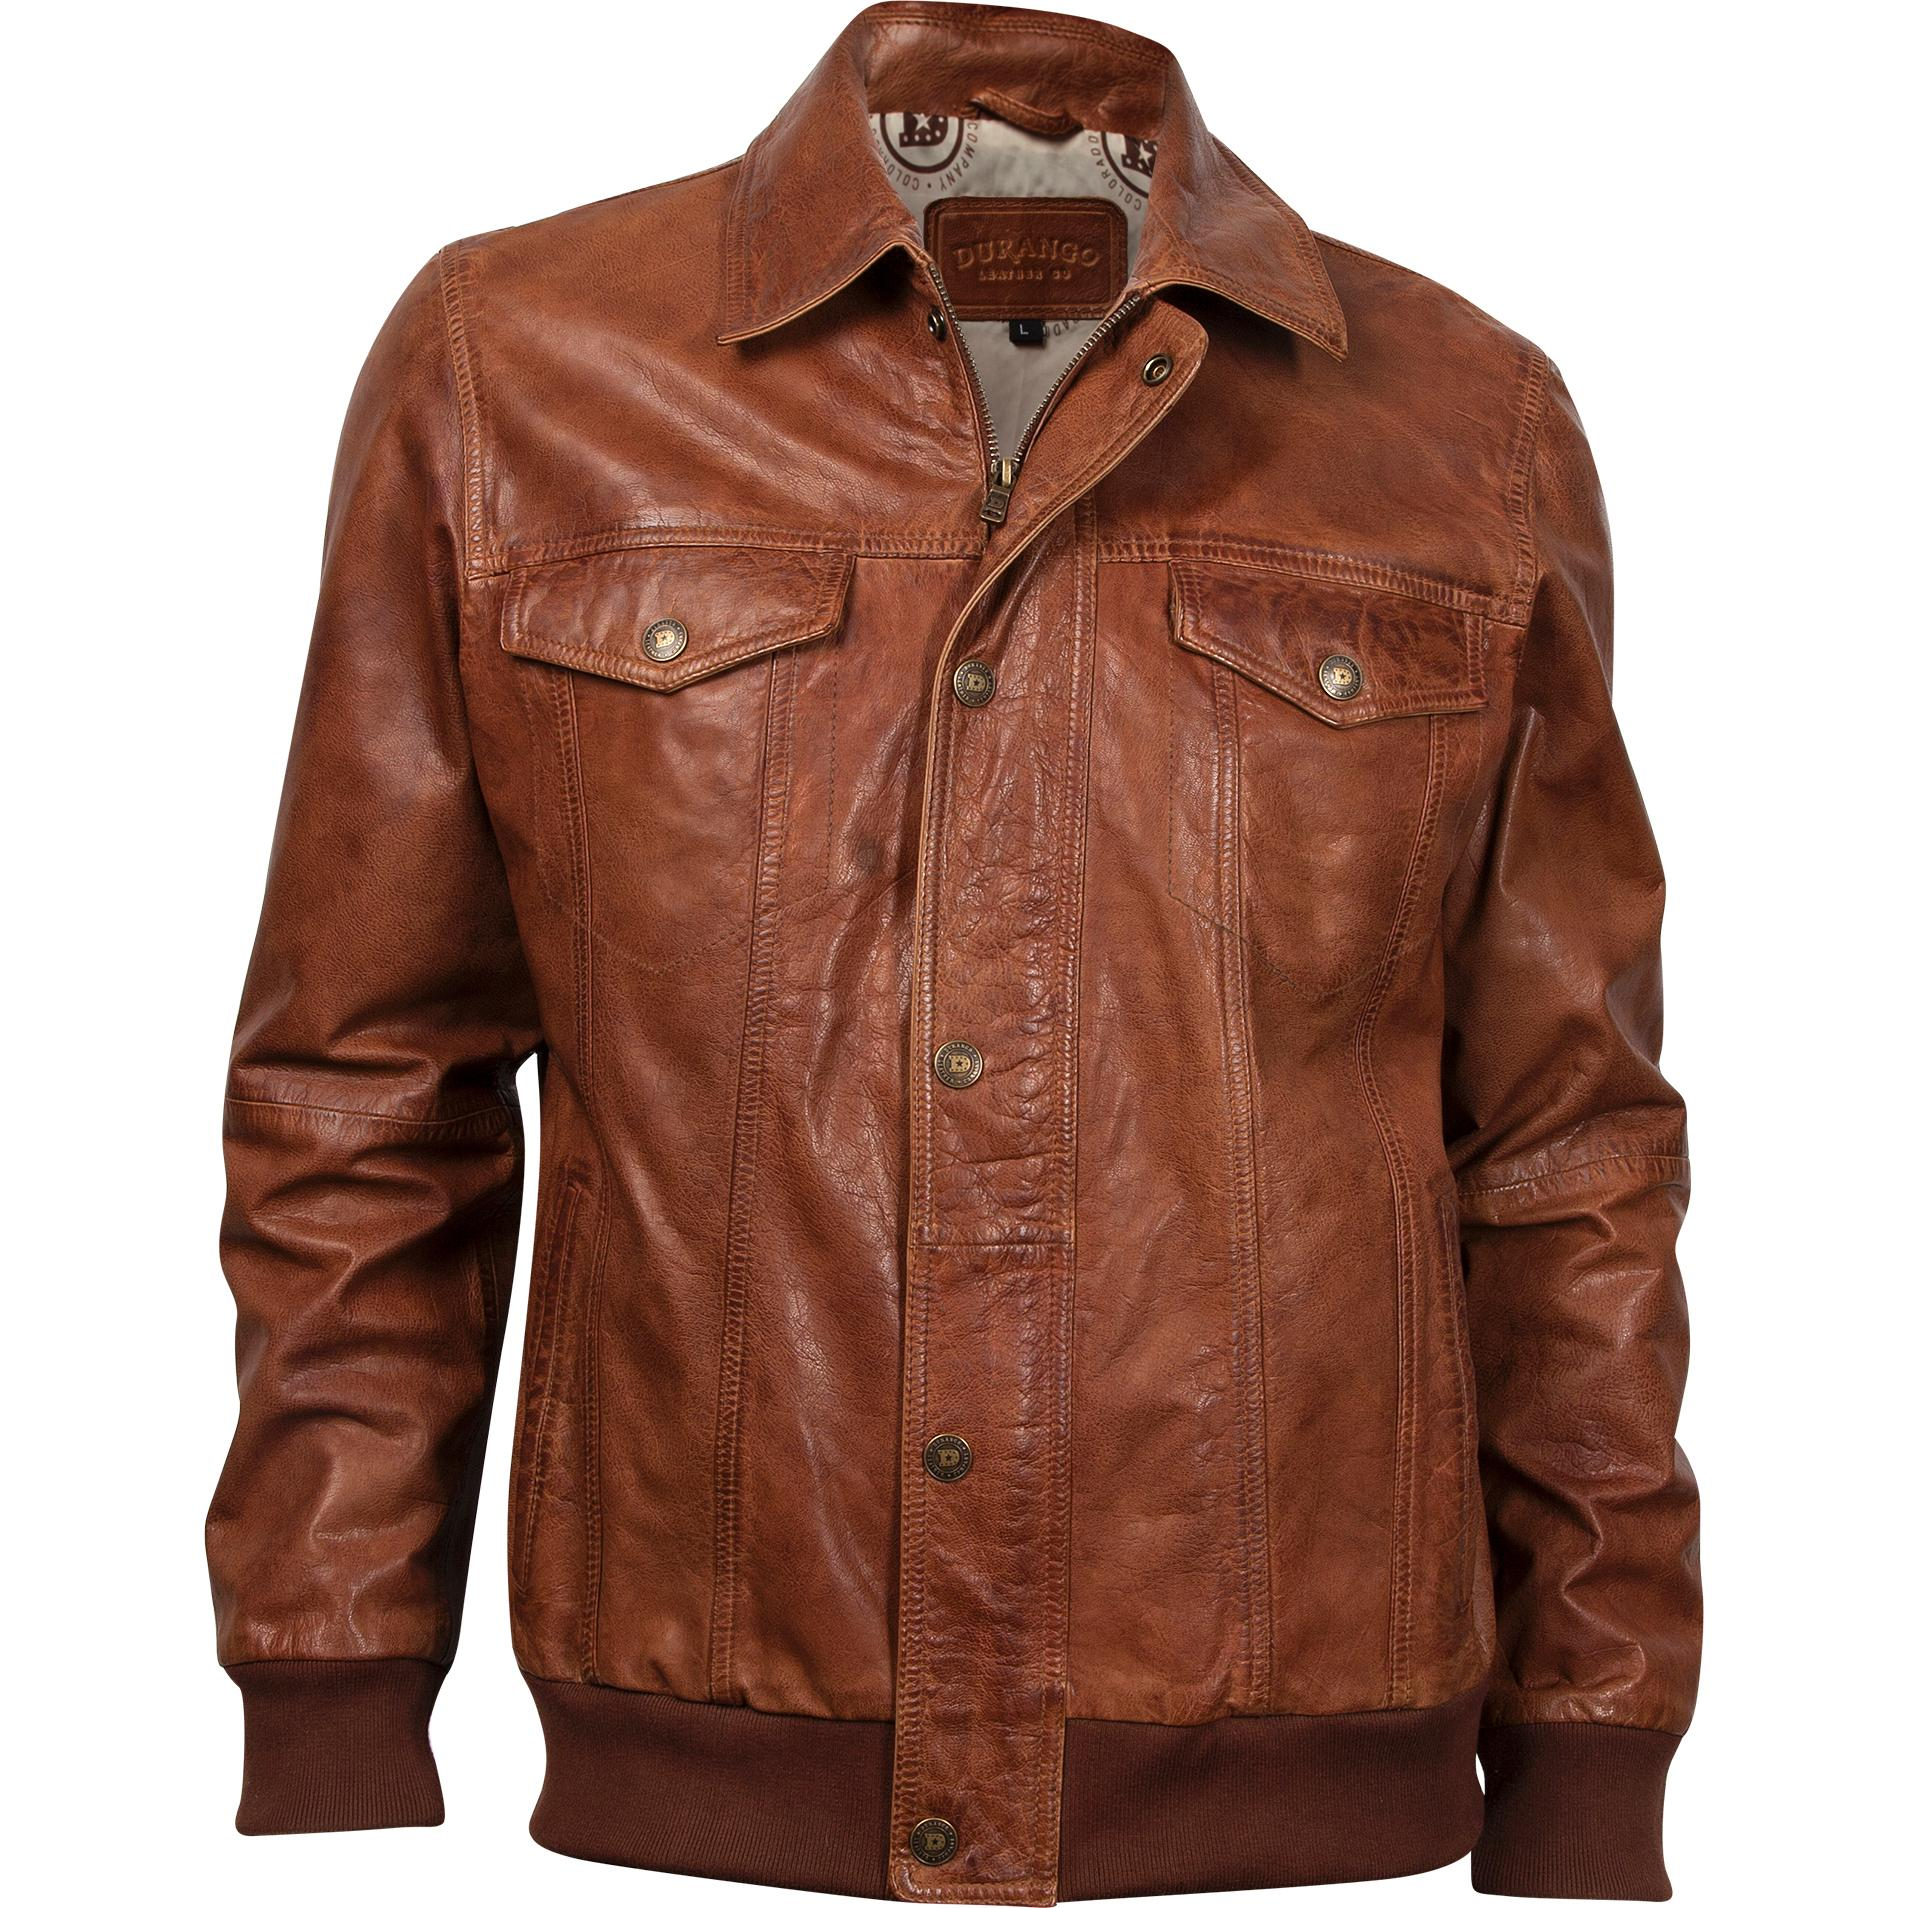 winners union usa est apparel rugged reed rug img jacket leather made in